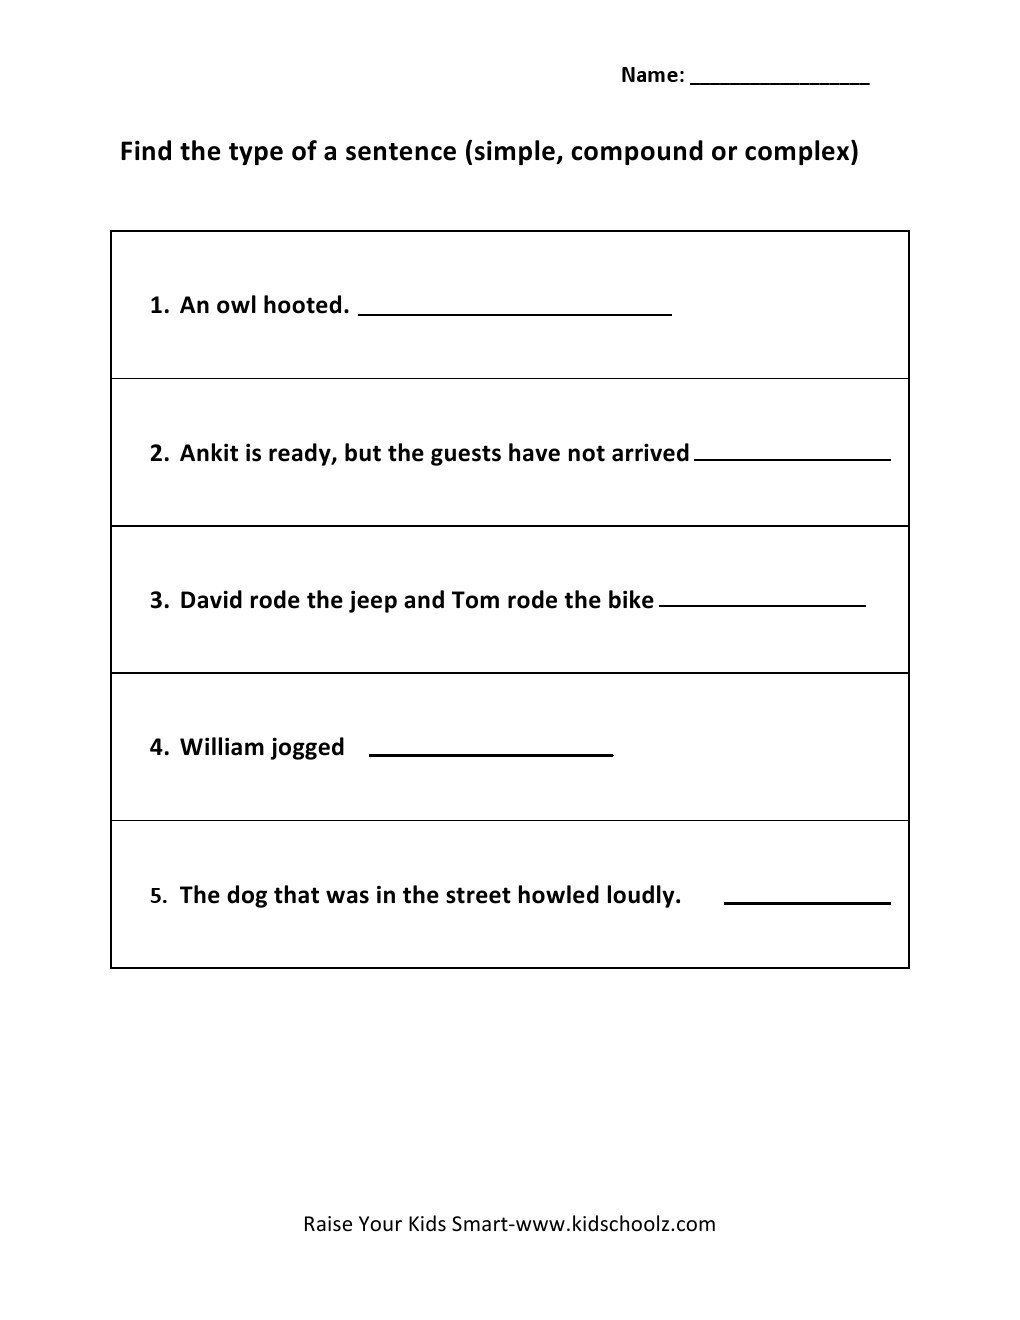 Types Of Sentences Worksheet Grade 5 Types Of Sentence Worksheets 2 Kidschoolz